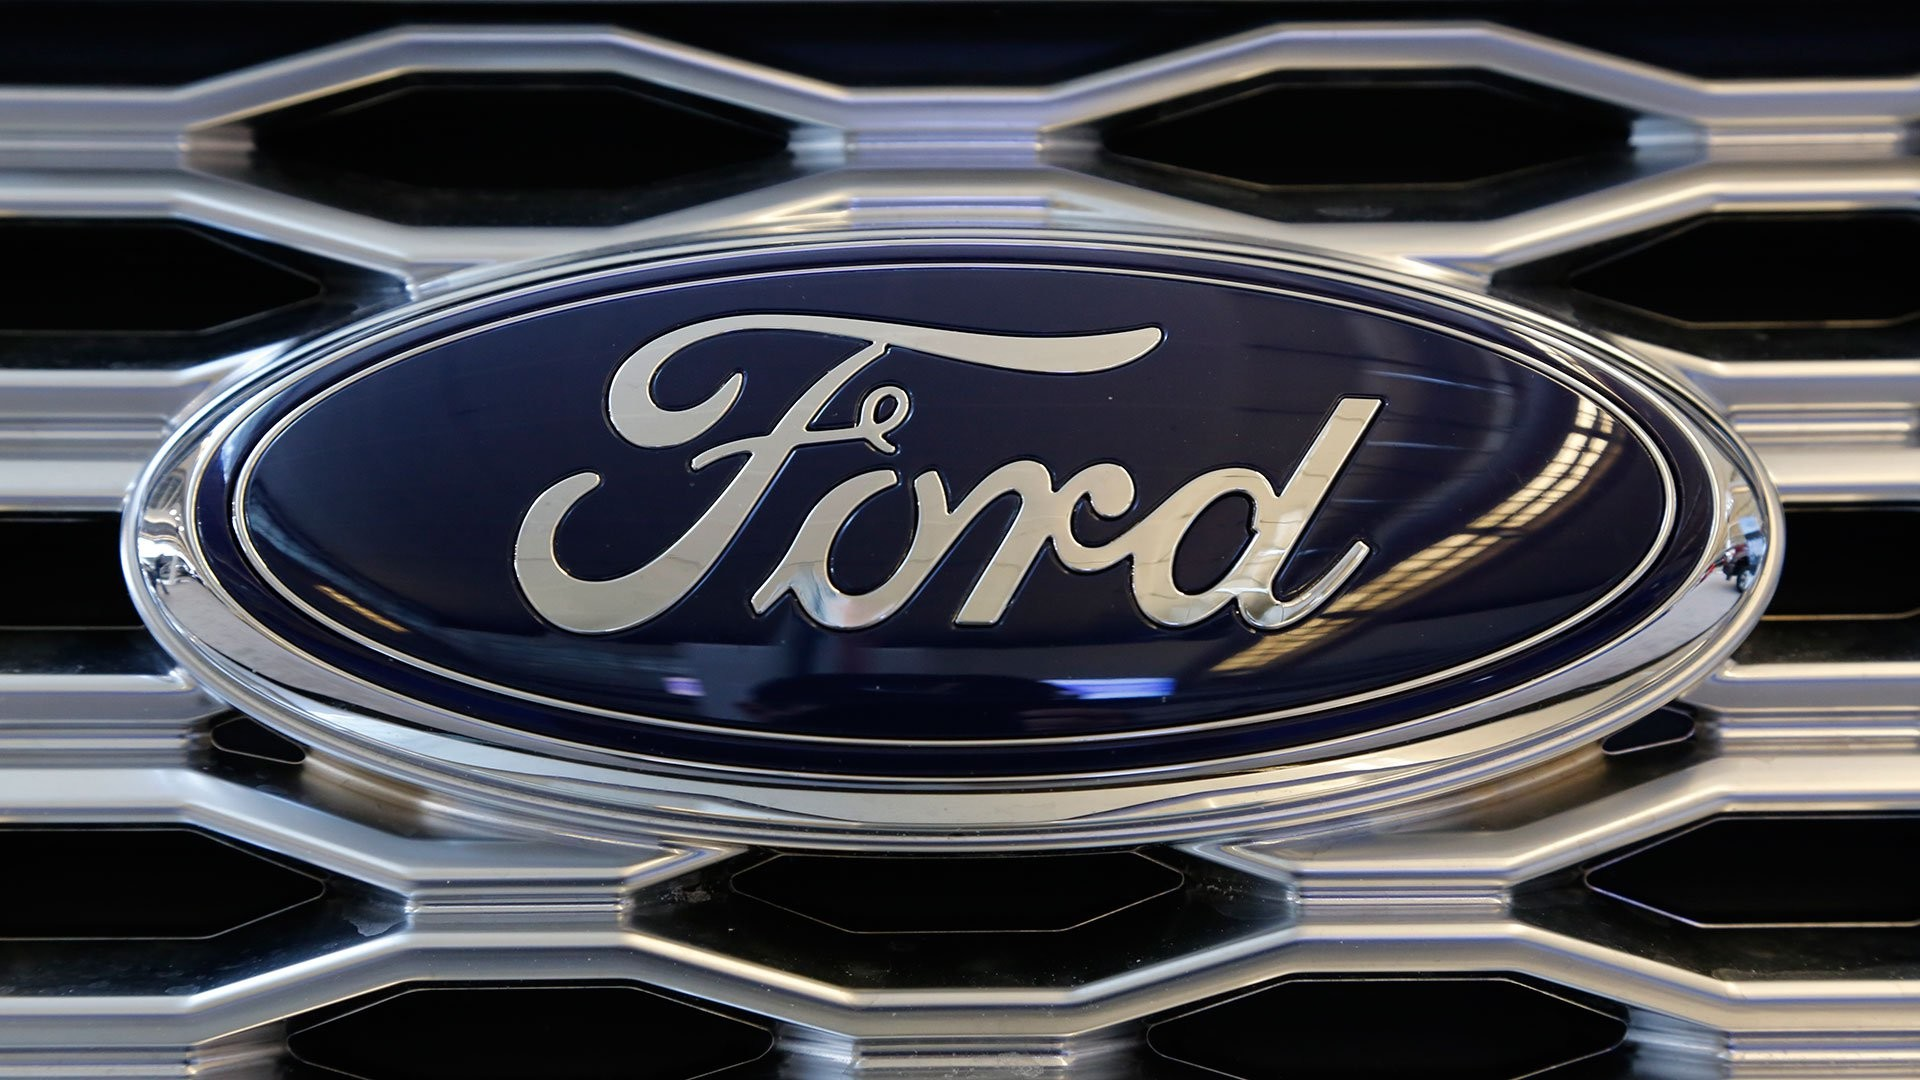 Ford Logo Wallpaper 183 ①